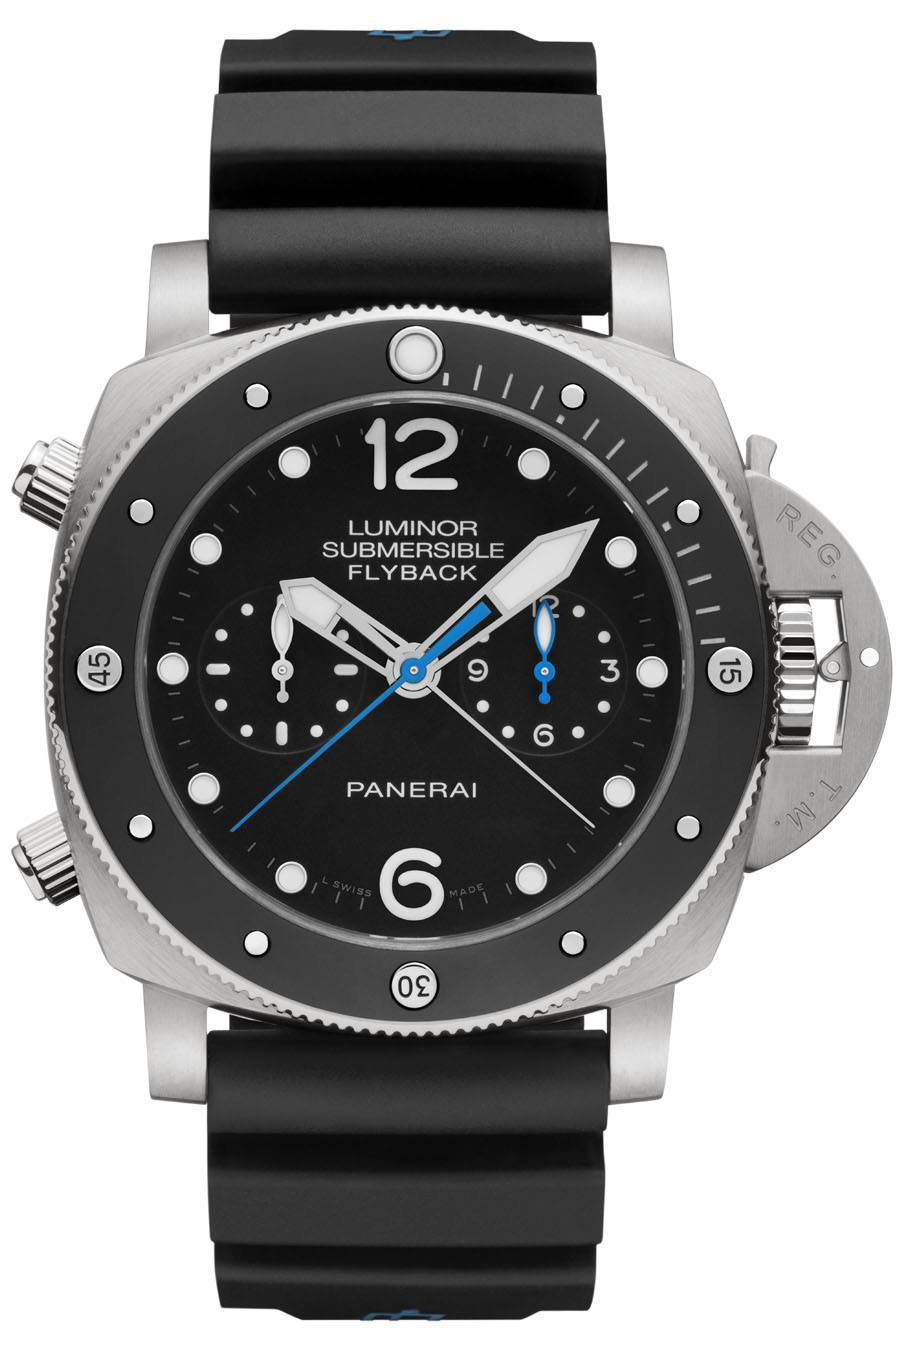 Taucheruhr 2015: Panerai Luminor Submersible 1950 3 Days Chrono Flyback Automatic Titanio